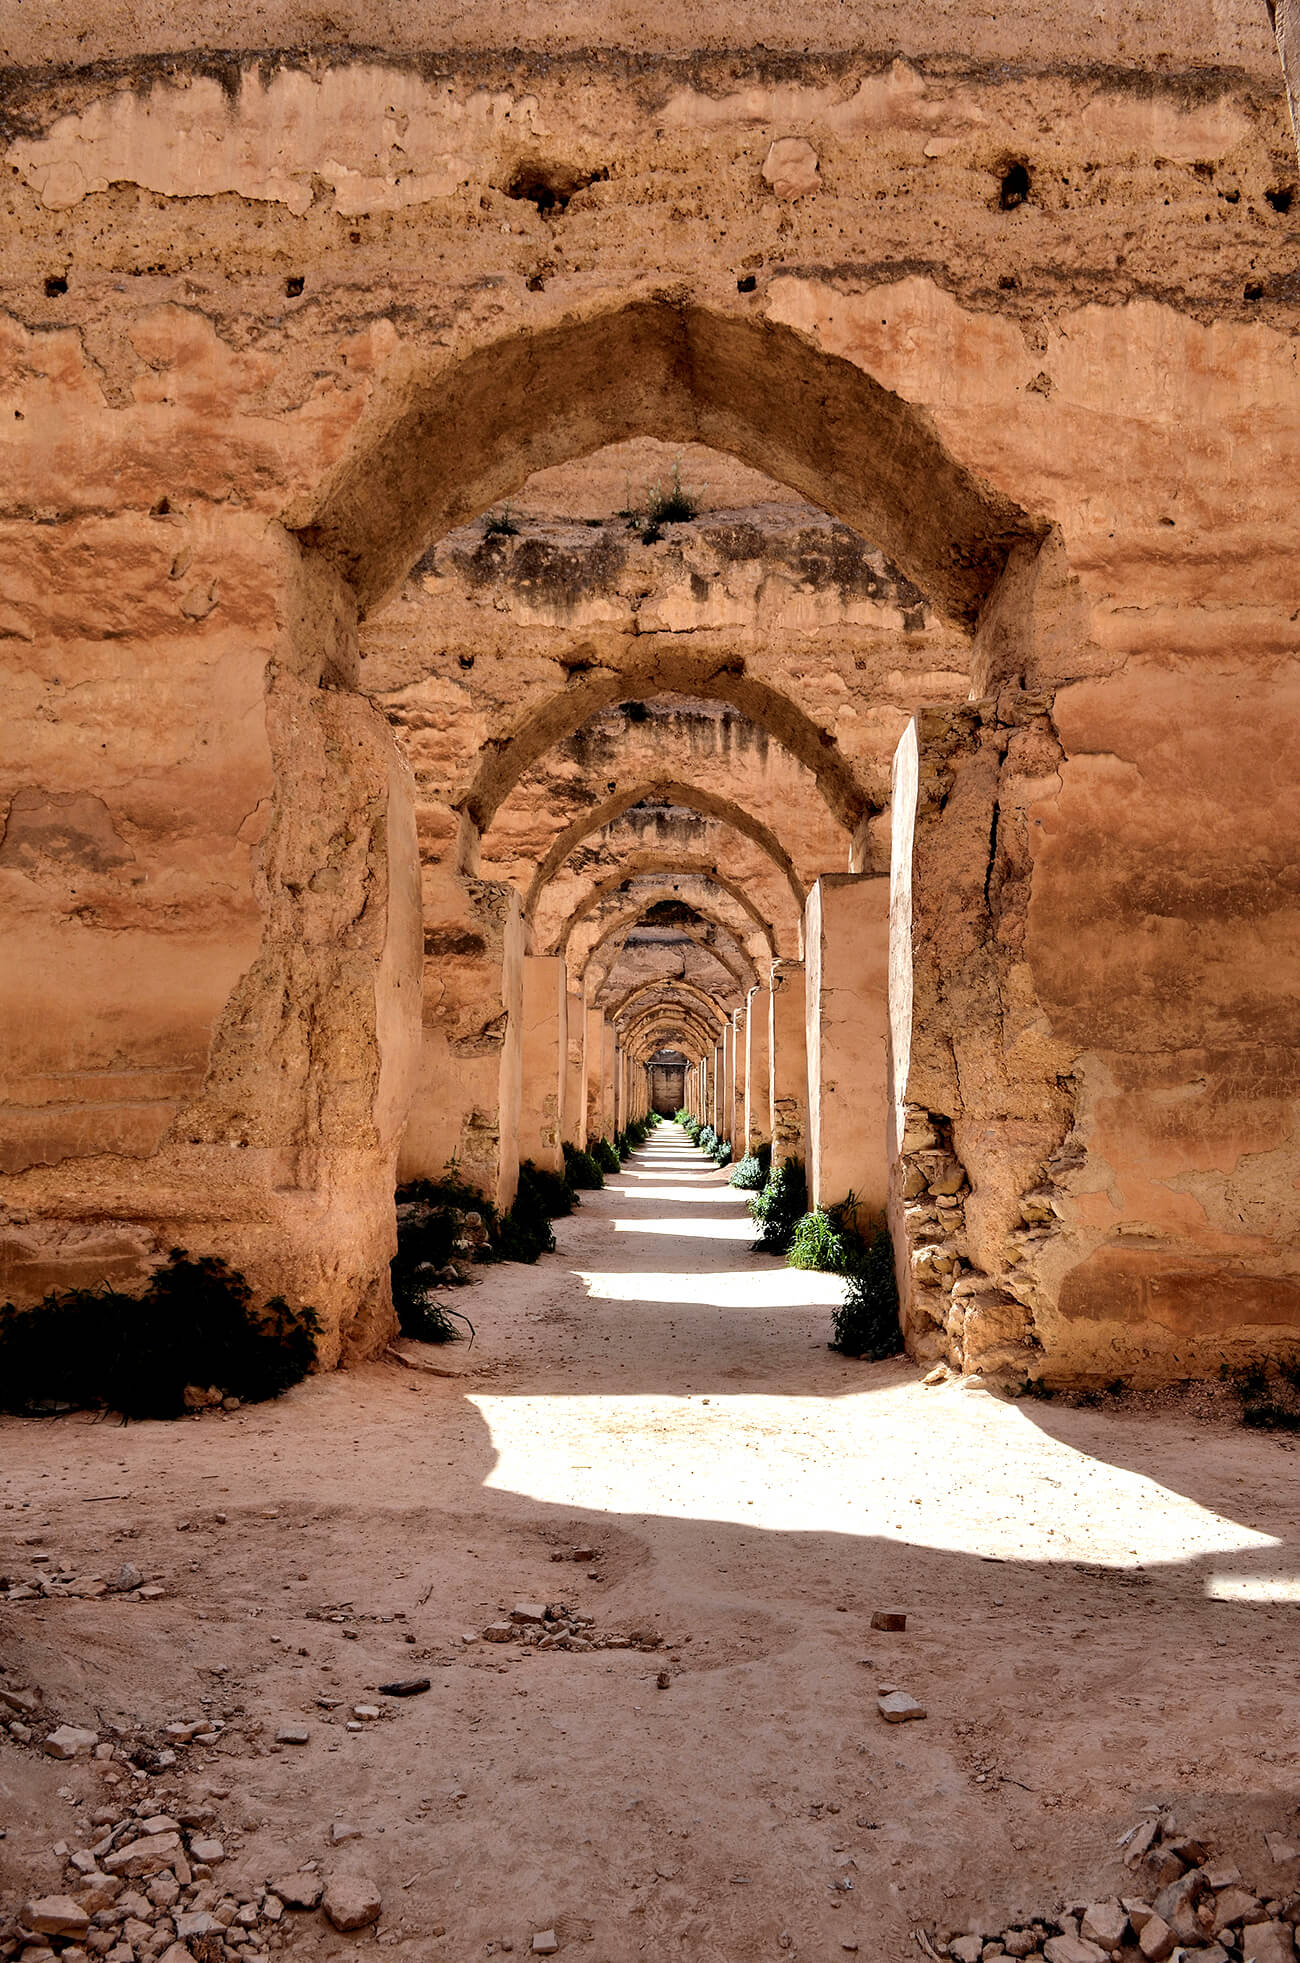 Sahara Desert Tour - What to See and Do in Meknes, one of Morocco's Grandest Ancient Cities - Heri Es Souani